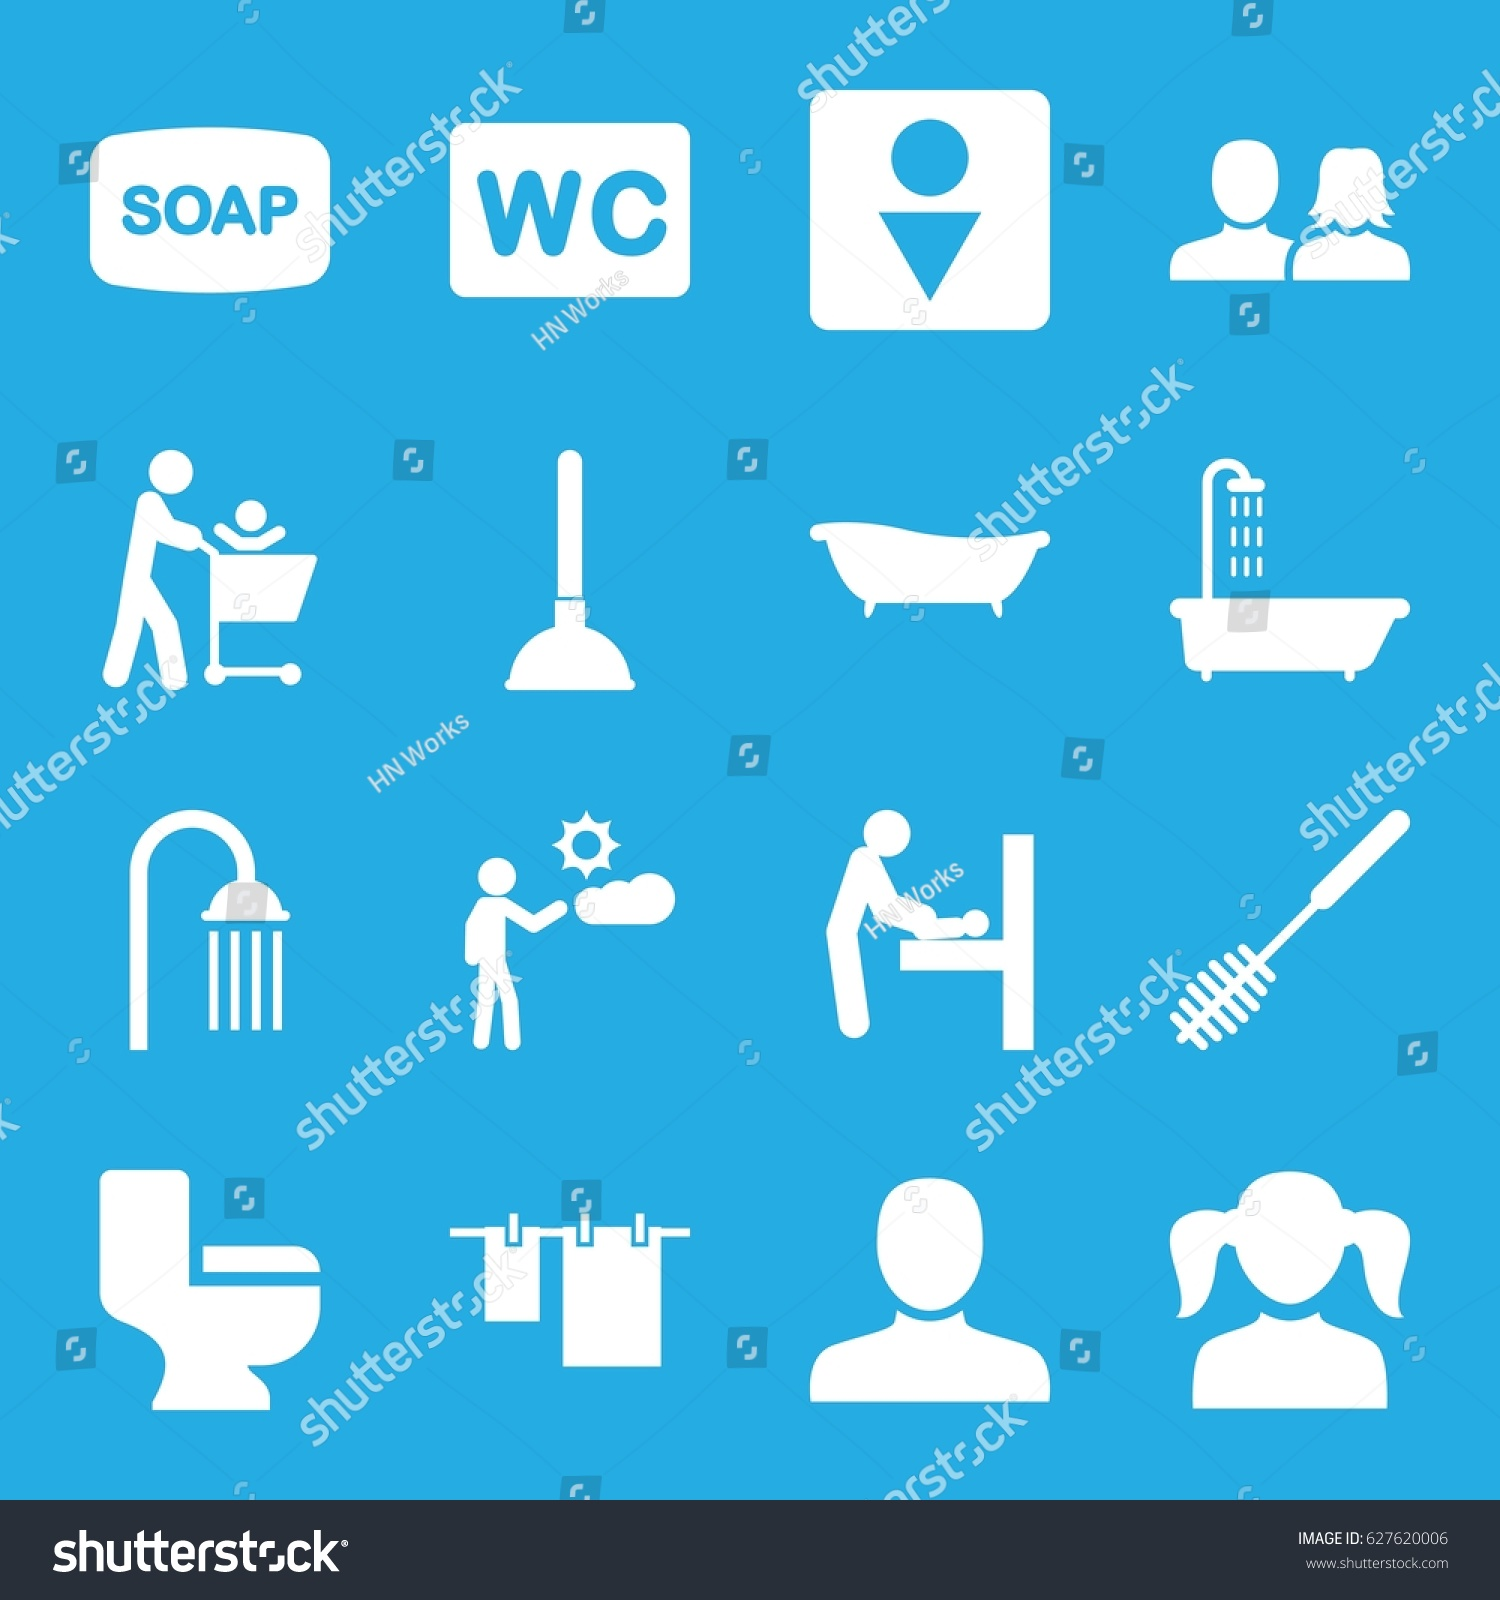 Toilet Icons Set Set 16 Toilet Stock Vector 627620006 - Shutterstock